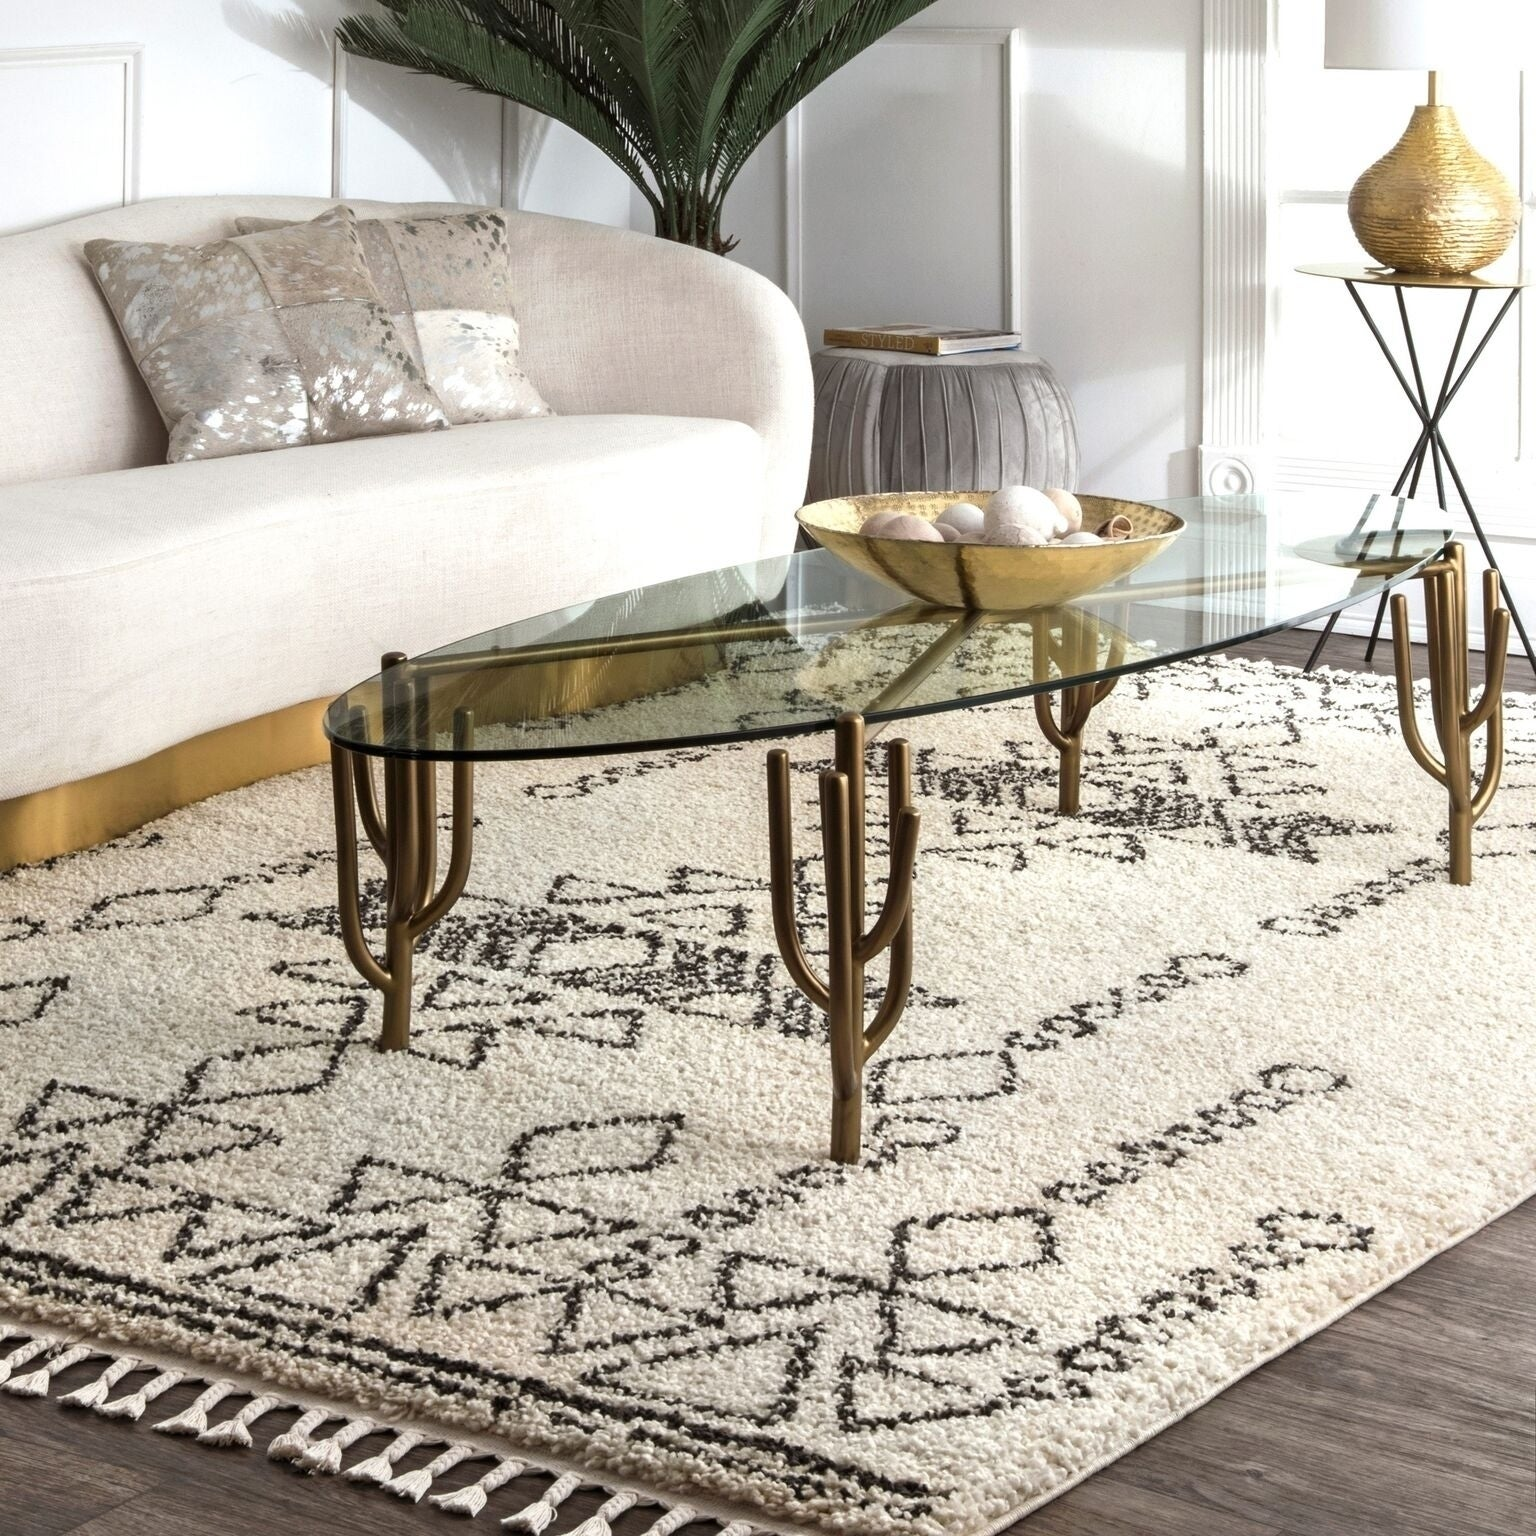 Nuloom Off White Contemporary Soft And Plush Moroccan Tribal Tel Rug